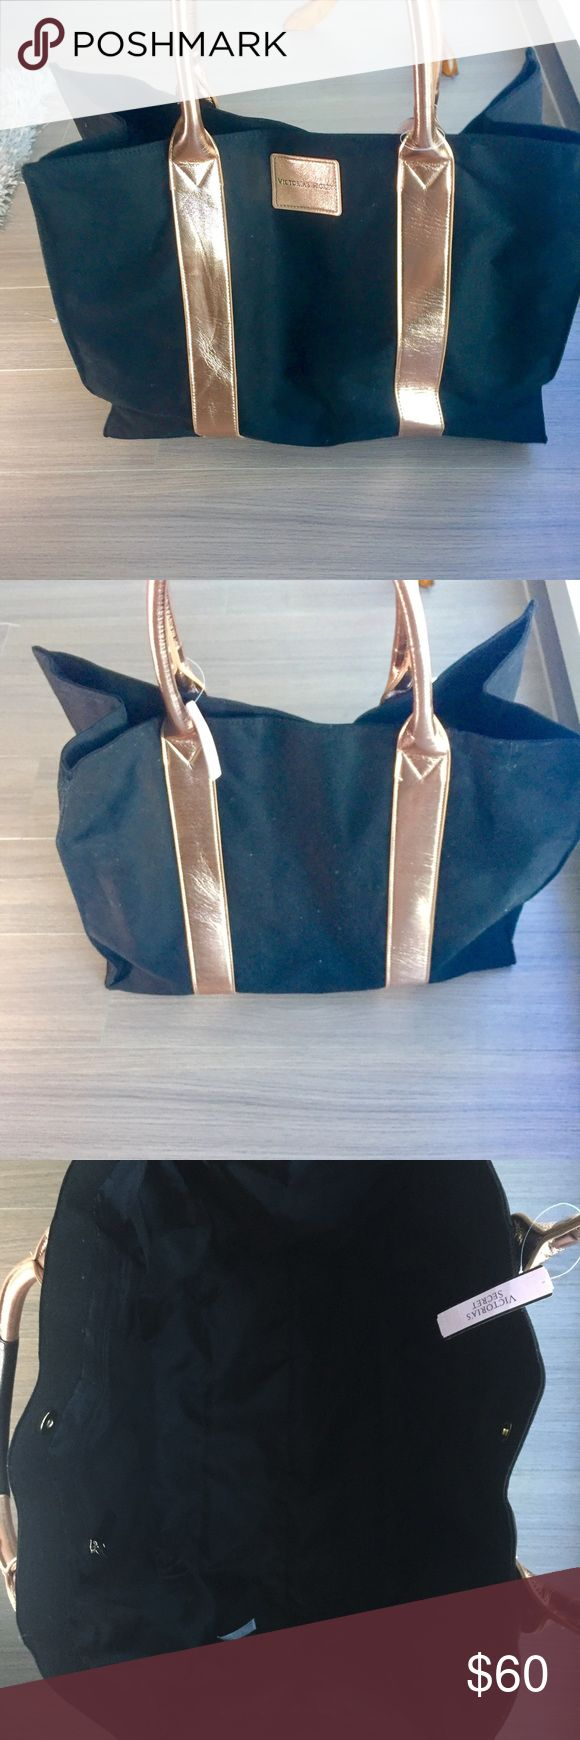 "Victoria's Secret Black & Rose Gold Tote Bag NWT Victoria's Secret Black & Rose Gold Tote Bag - NWT - large tote bag - inside one zipper pocket - 100% cotton canvas tote - black and rose gold - measures approx. 19.5"" x 14.5"" x 8"" - limited edition - bundle & save! Victoria's Secret Bags Totes"